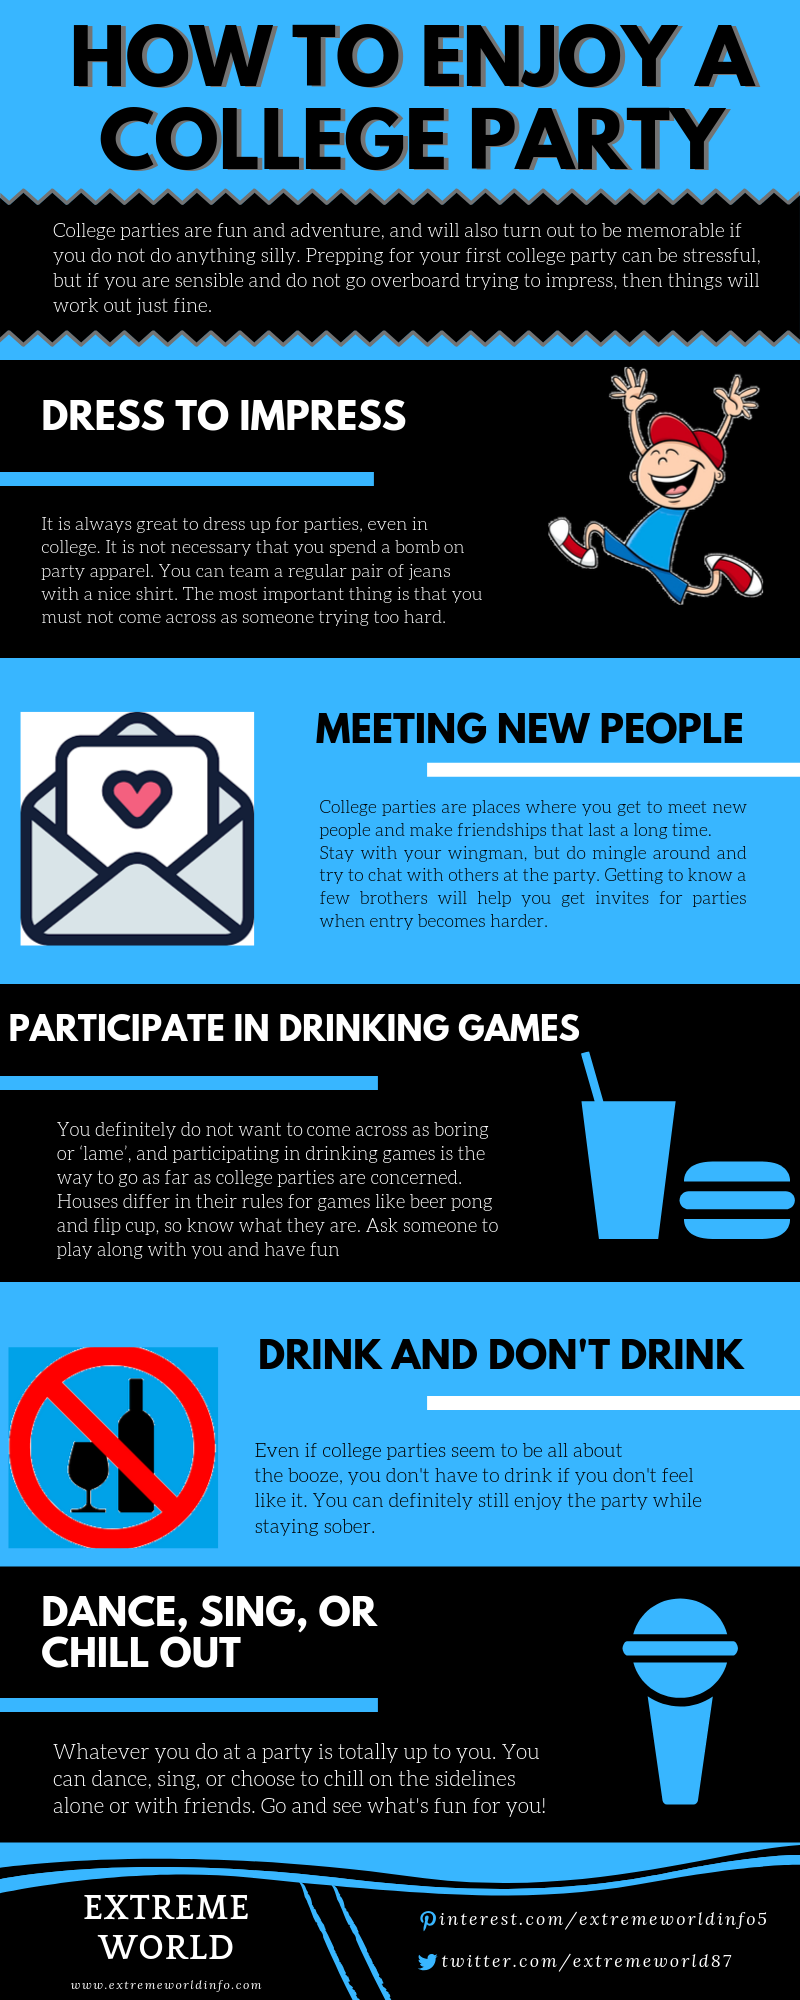 How to Enjoy a College Party #infographic